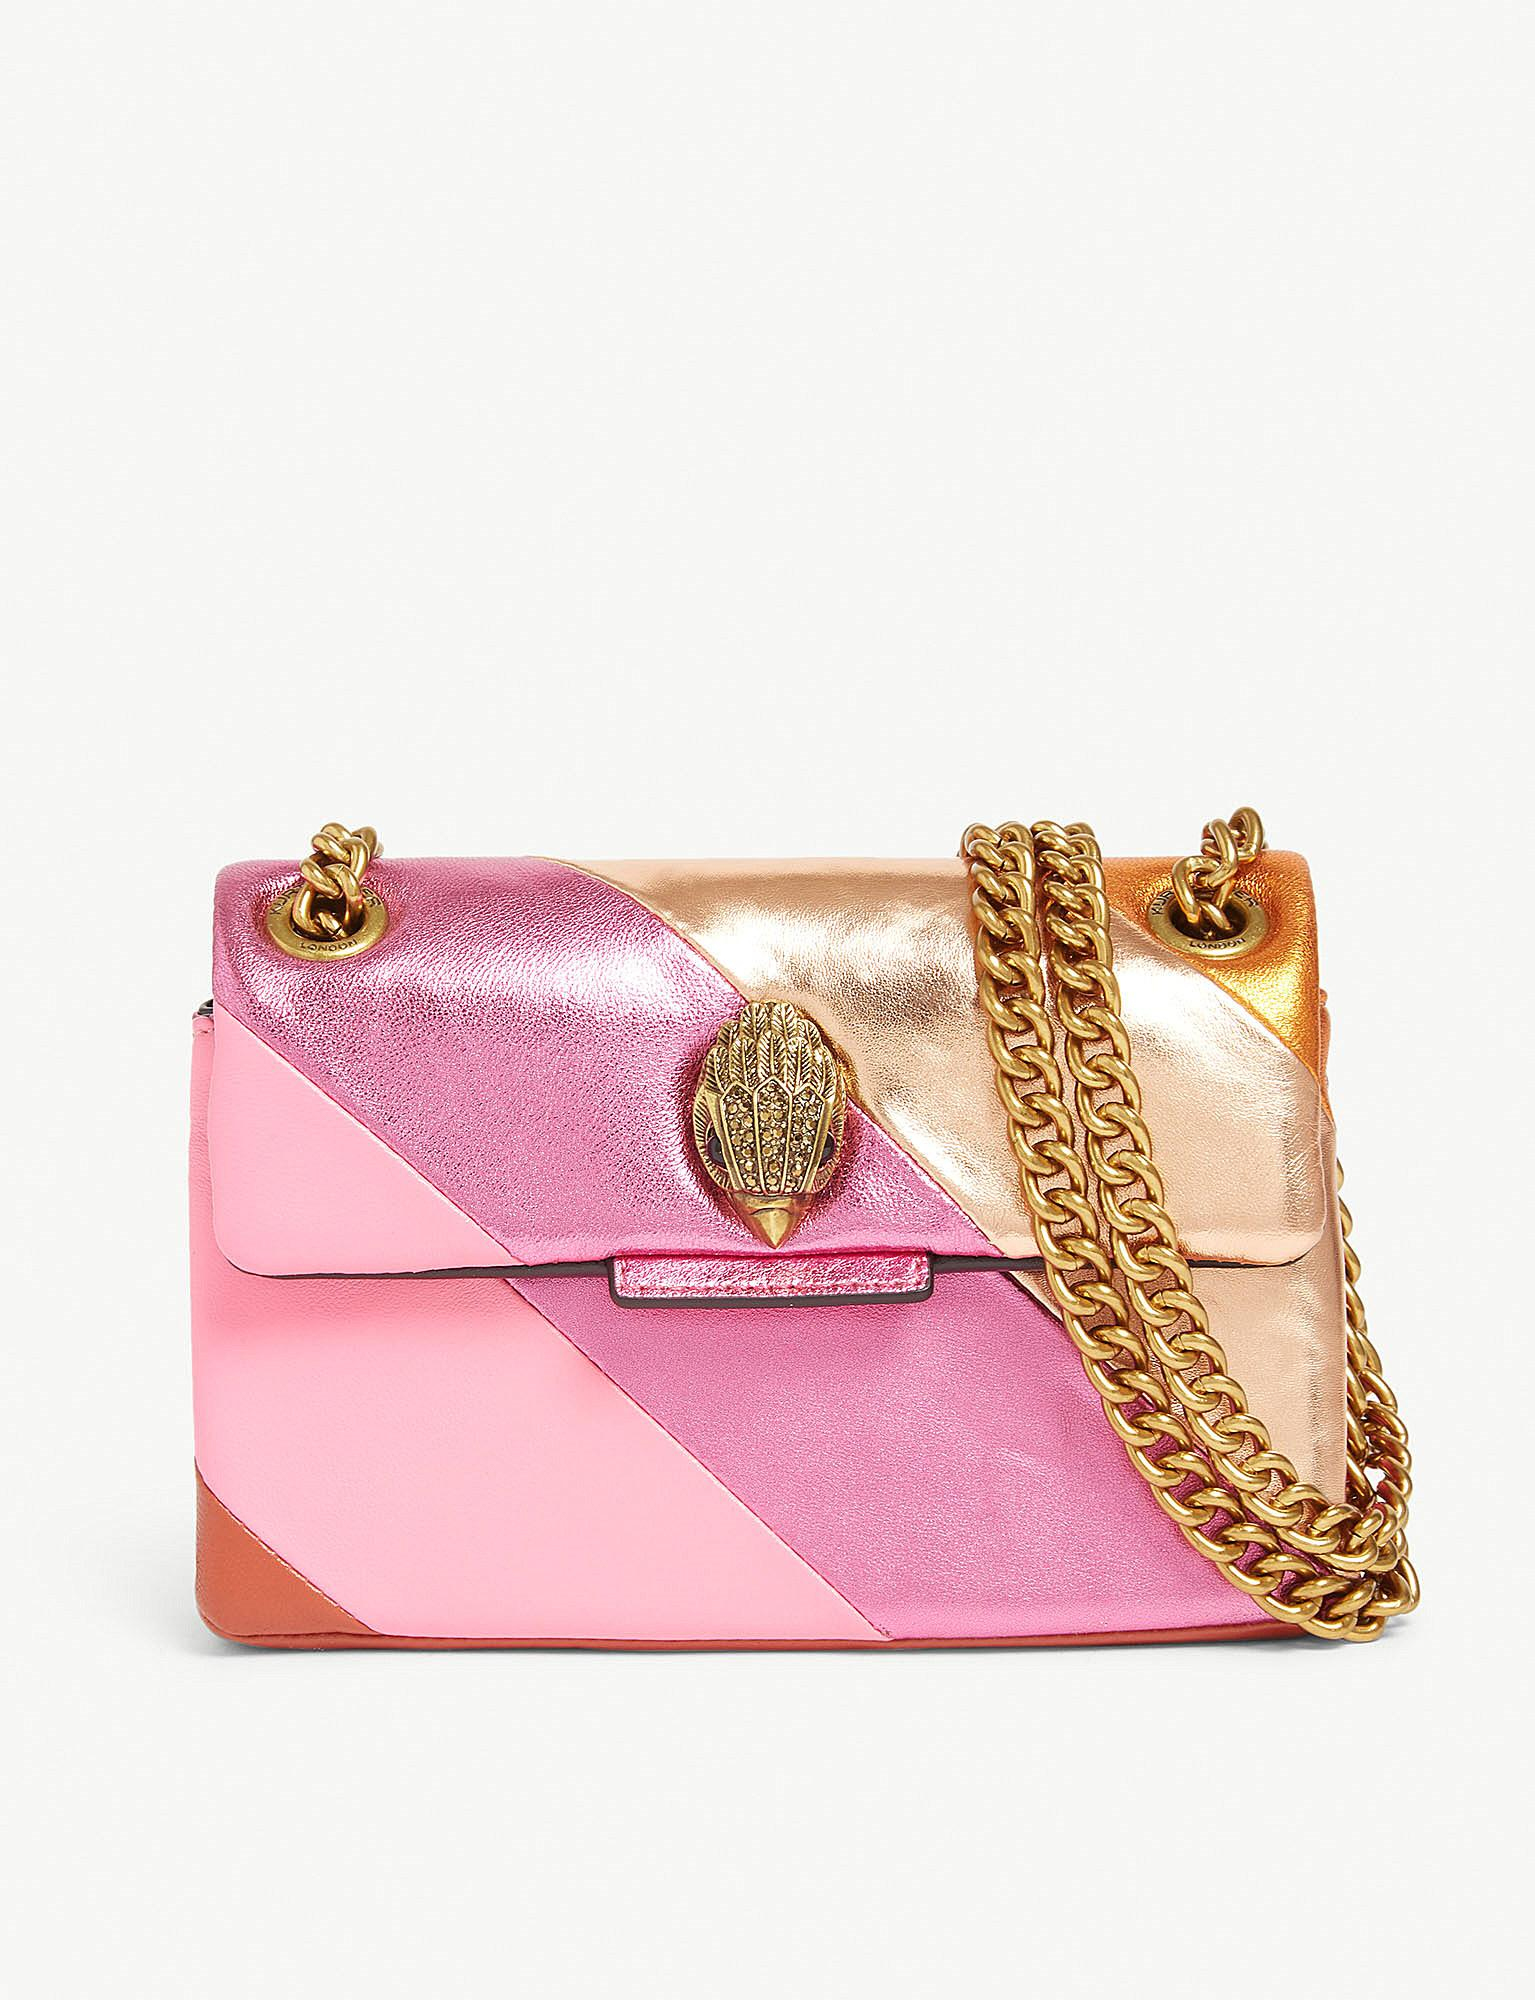 Kurt Geiger Mini Kensington S Leather Shoulder Bag in Pink - Lyst 5c52813c685d4